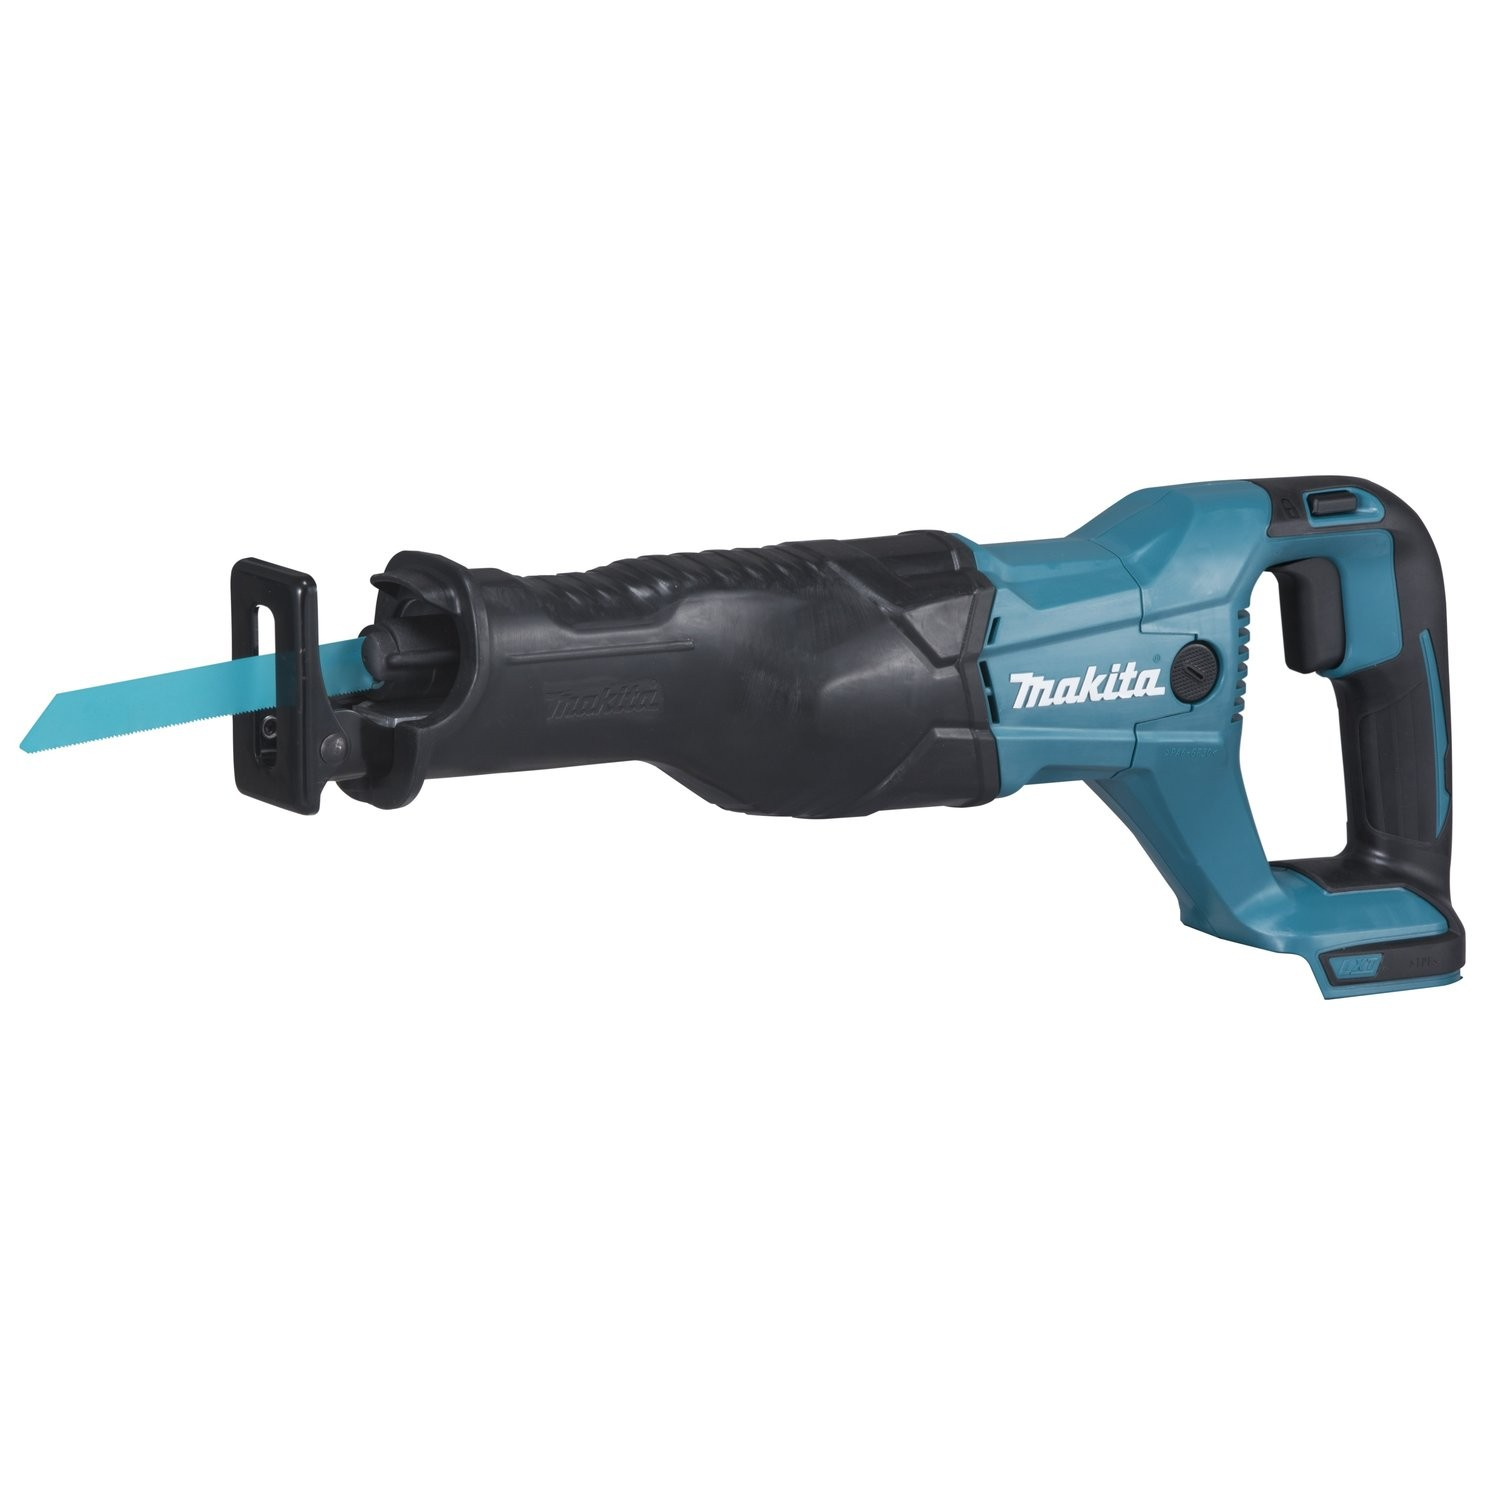 Makita Djr186z 18v Lxt Xpt Cordless Reciprocating Saw Body Only on electric work benches